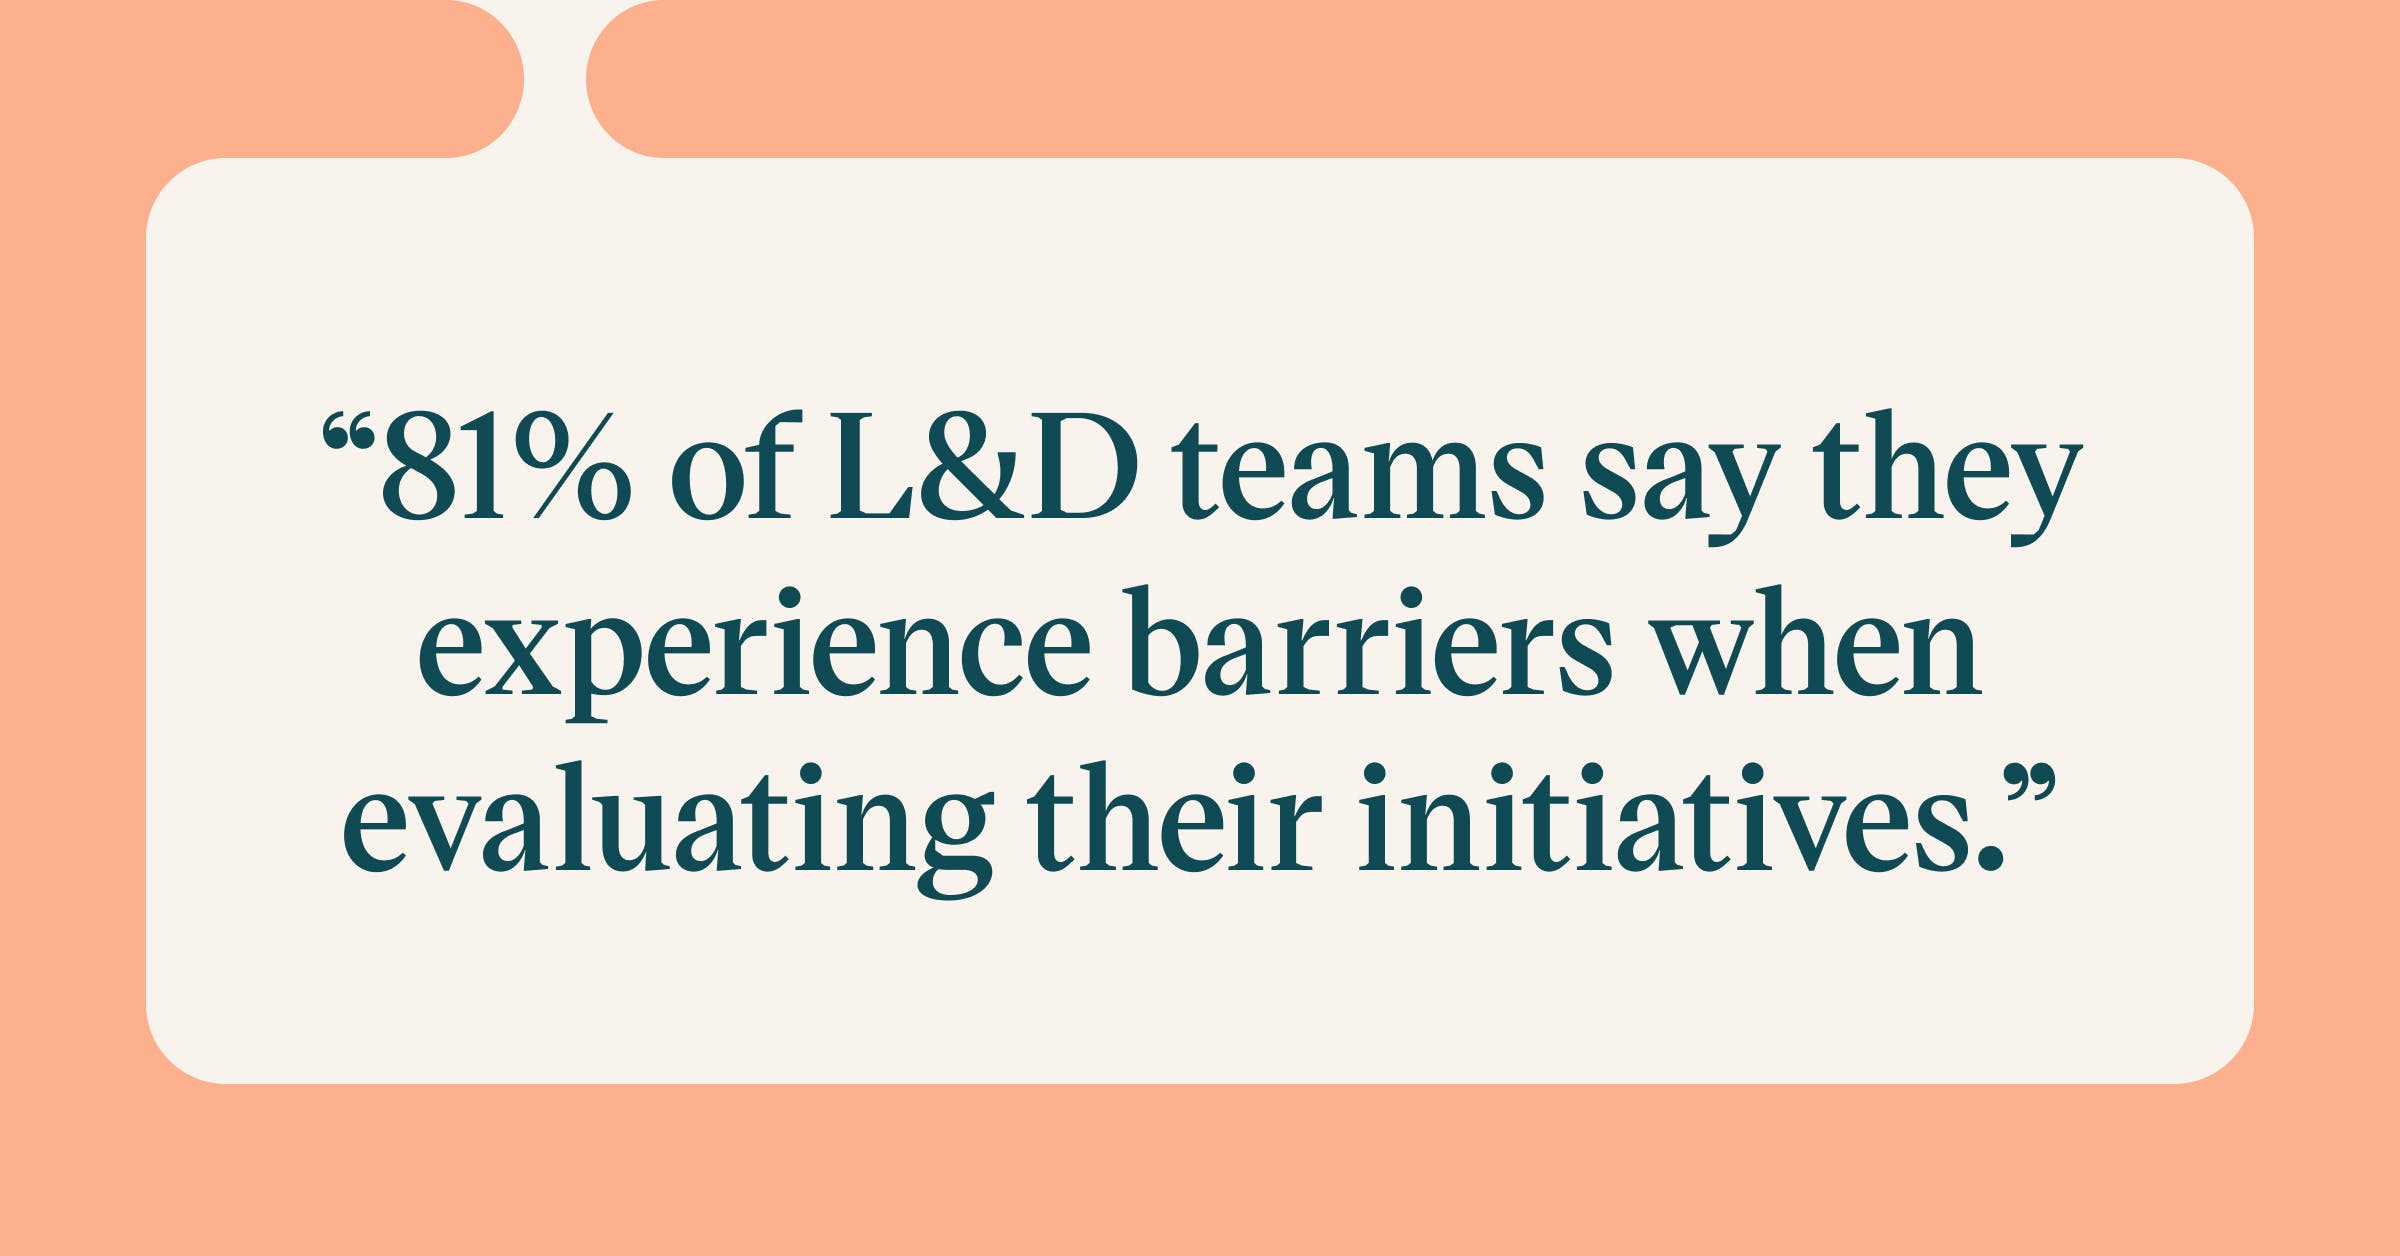 Pull quote with the text: 81% of L&D teams say they experience barriers when evaluating their initiatives